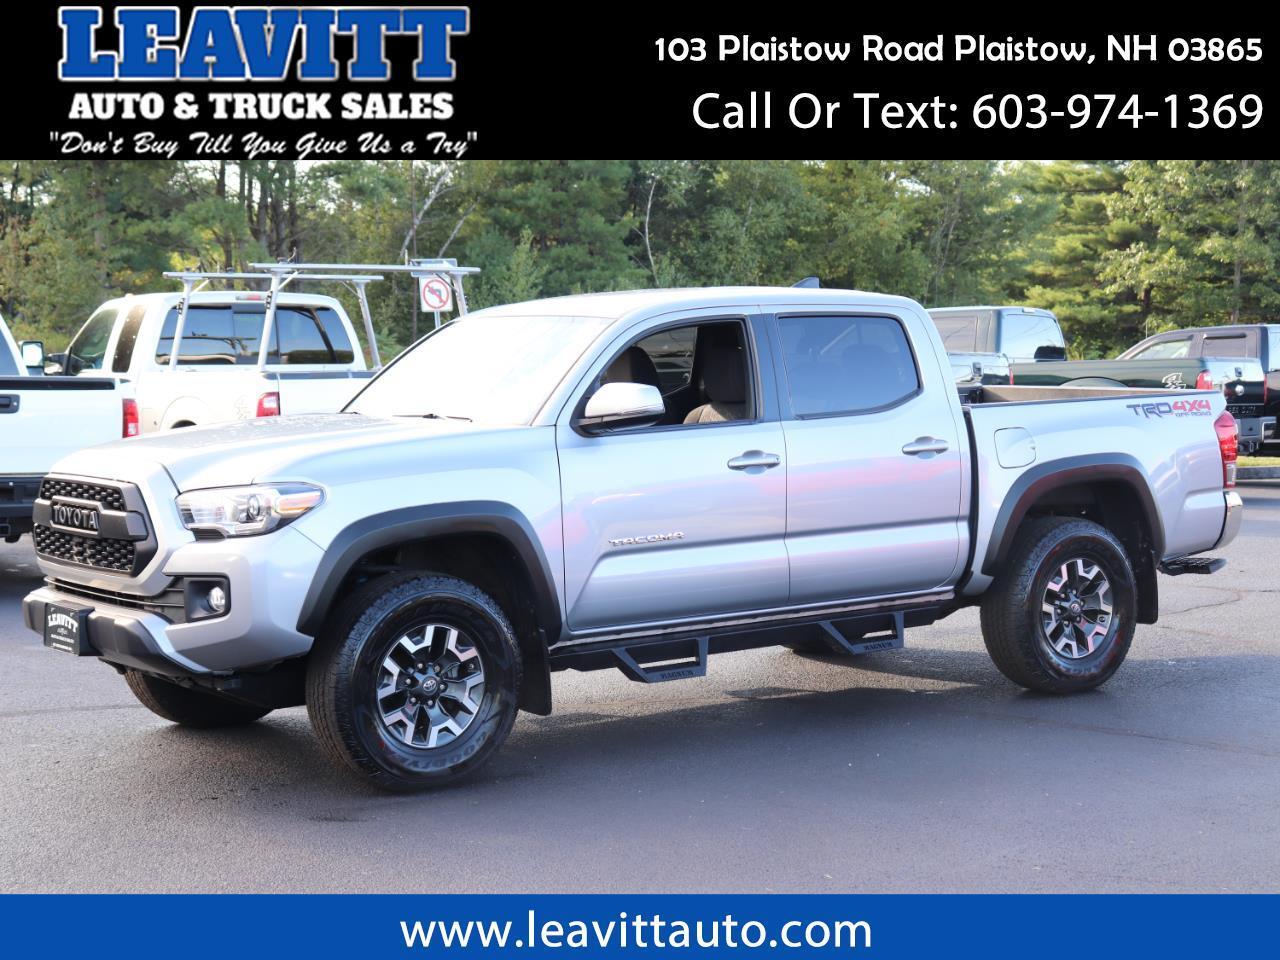 2017 Toyota Tacoma TRD OFF ROAD DOUBLE CAB 4X4 21K MILES